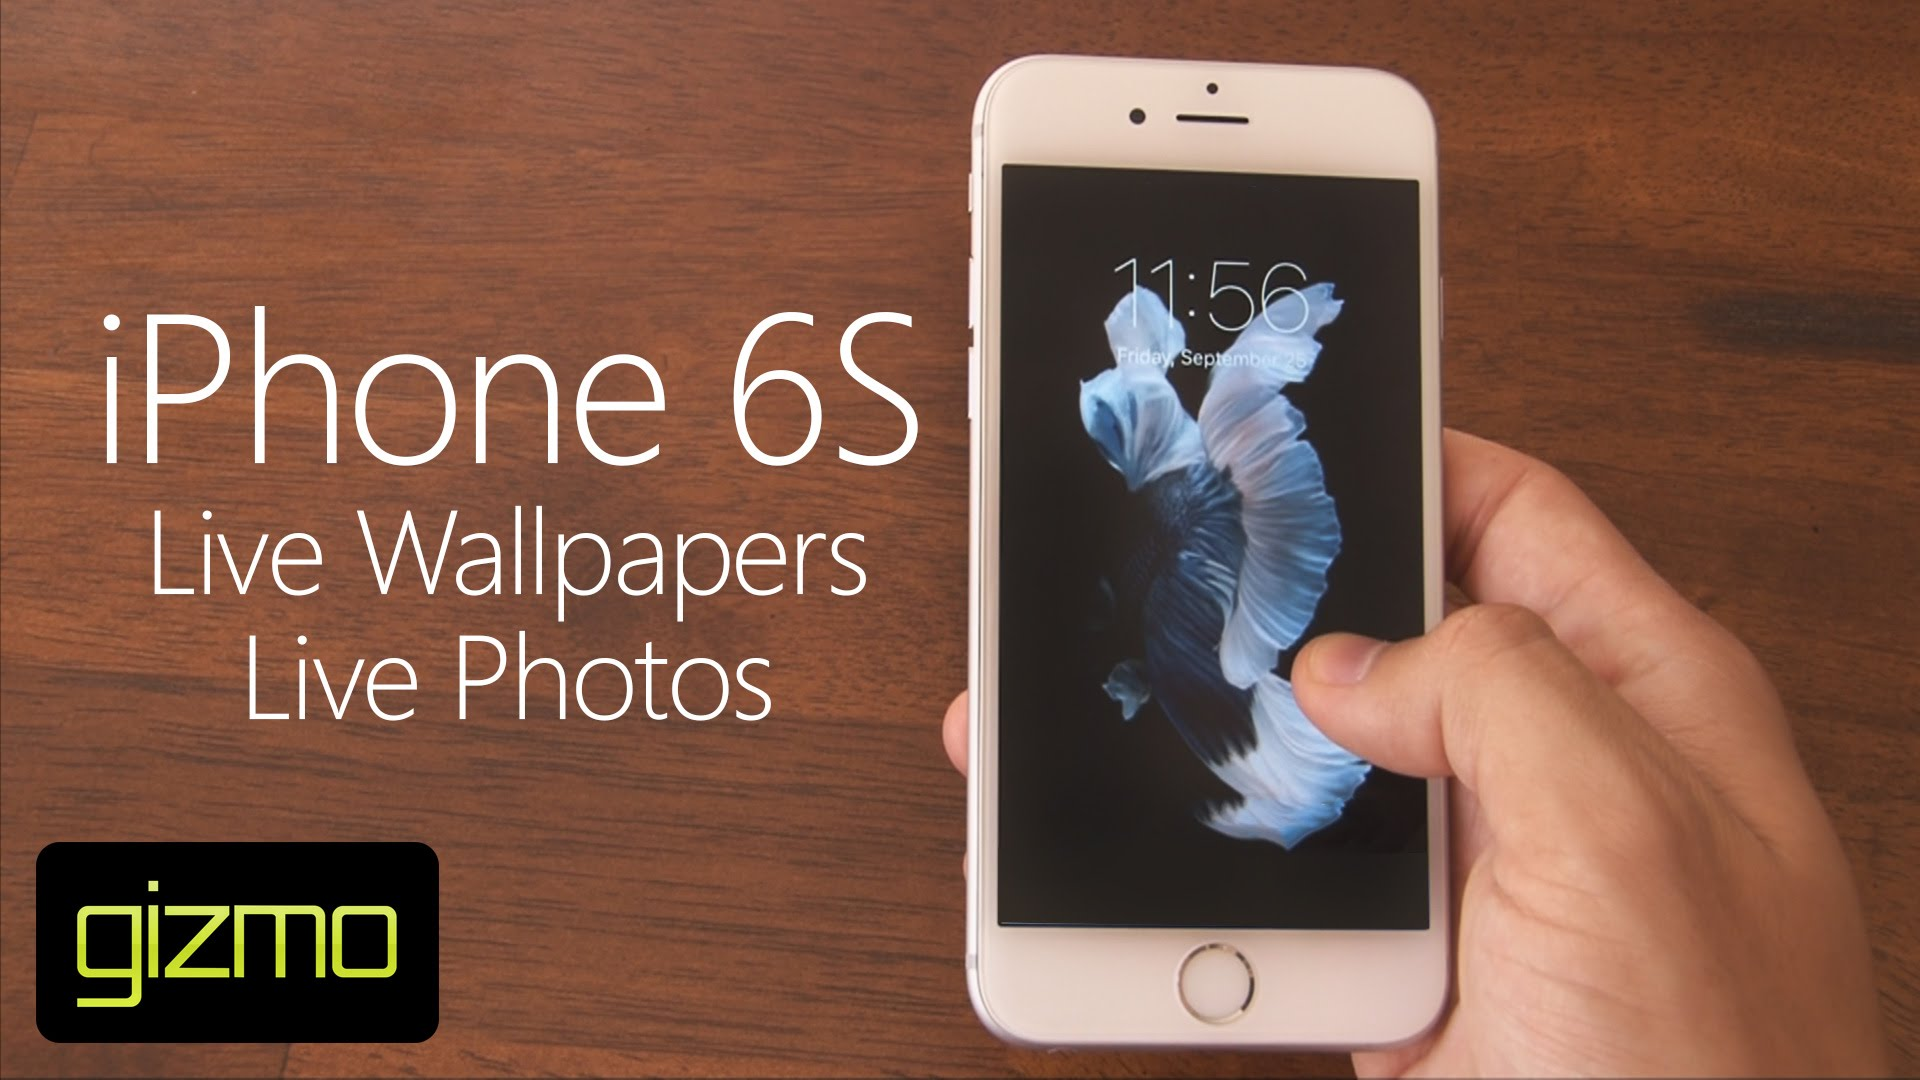 Download Ios 9 Live Wallpapers Iphone 6s 6s Plus: Live Wallpaper IPhone 6s Not Working